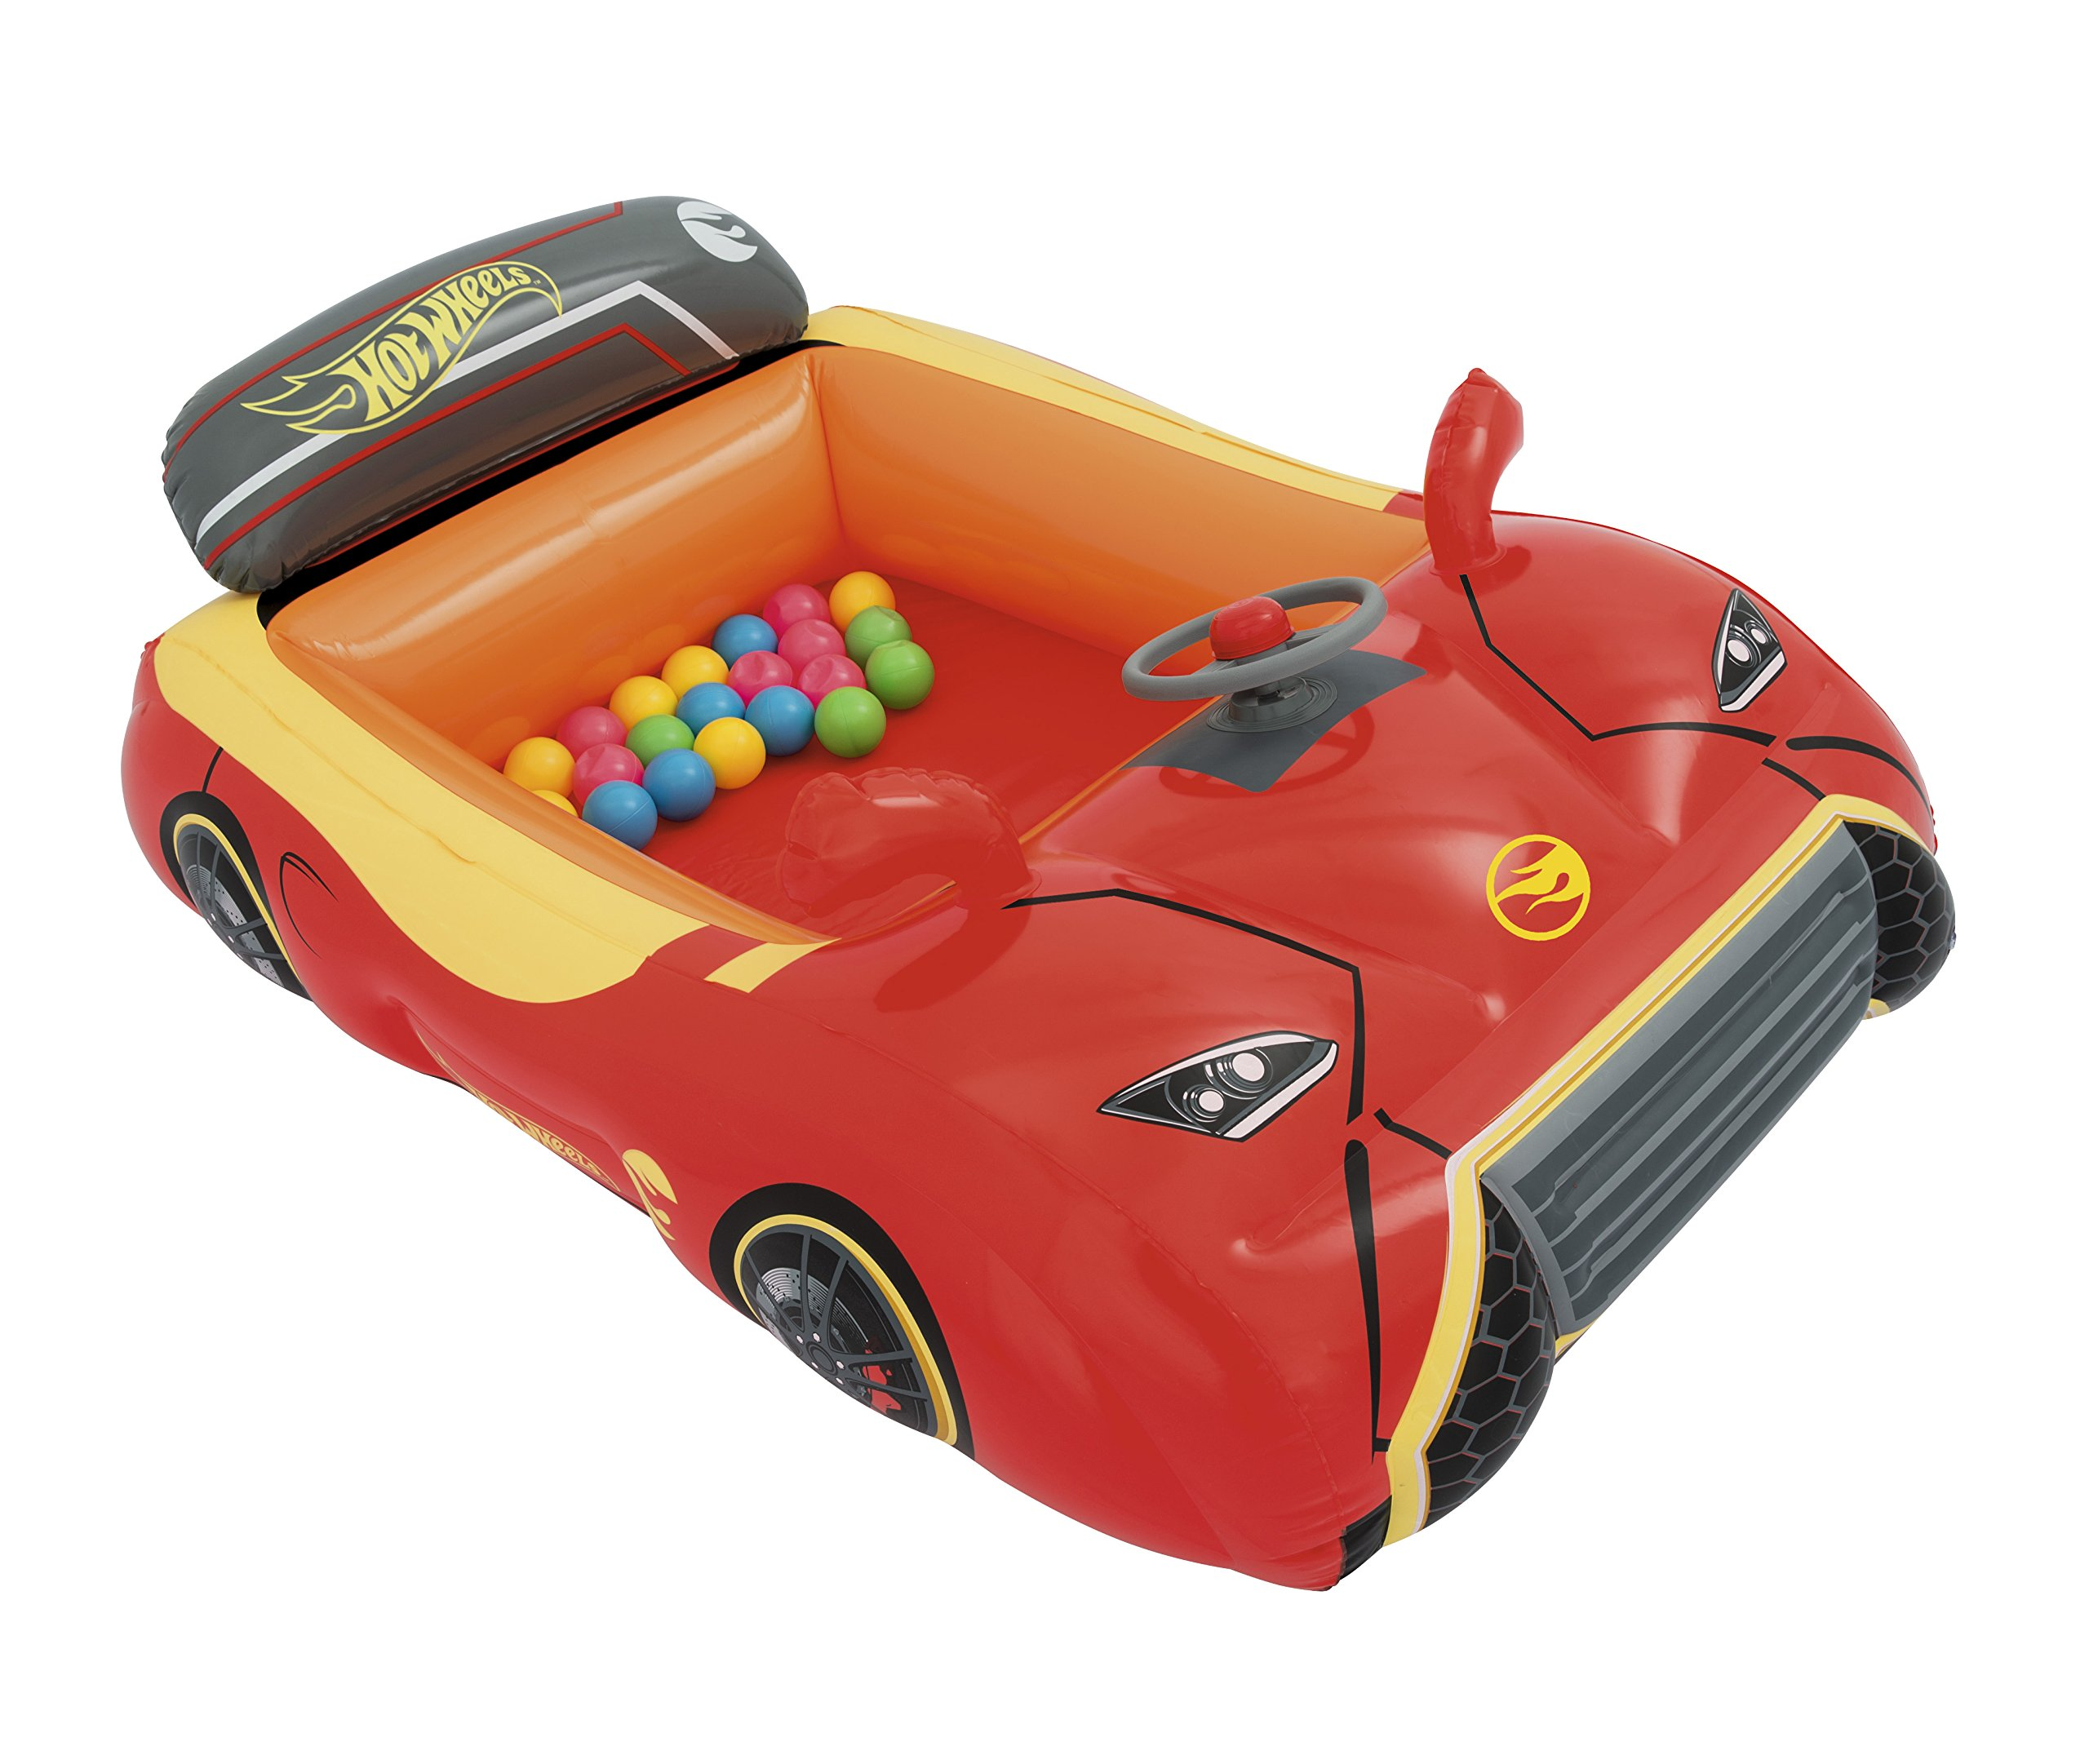 Bestway Hot Wheels Children's Inflatable Car Ball Pit, Includes 25 Balls by Bestway (Image #4)